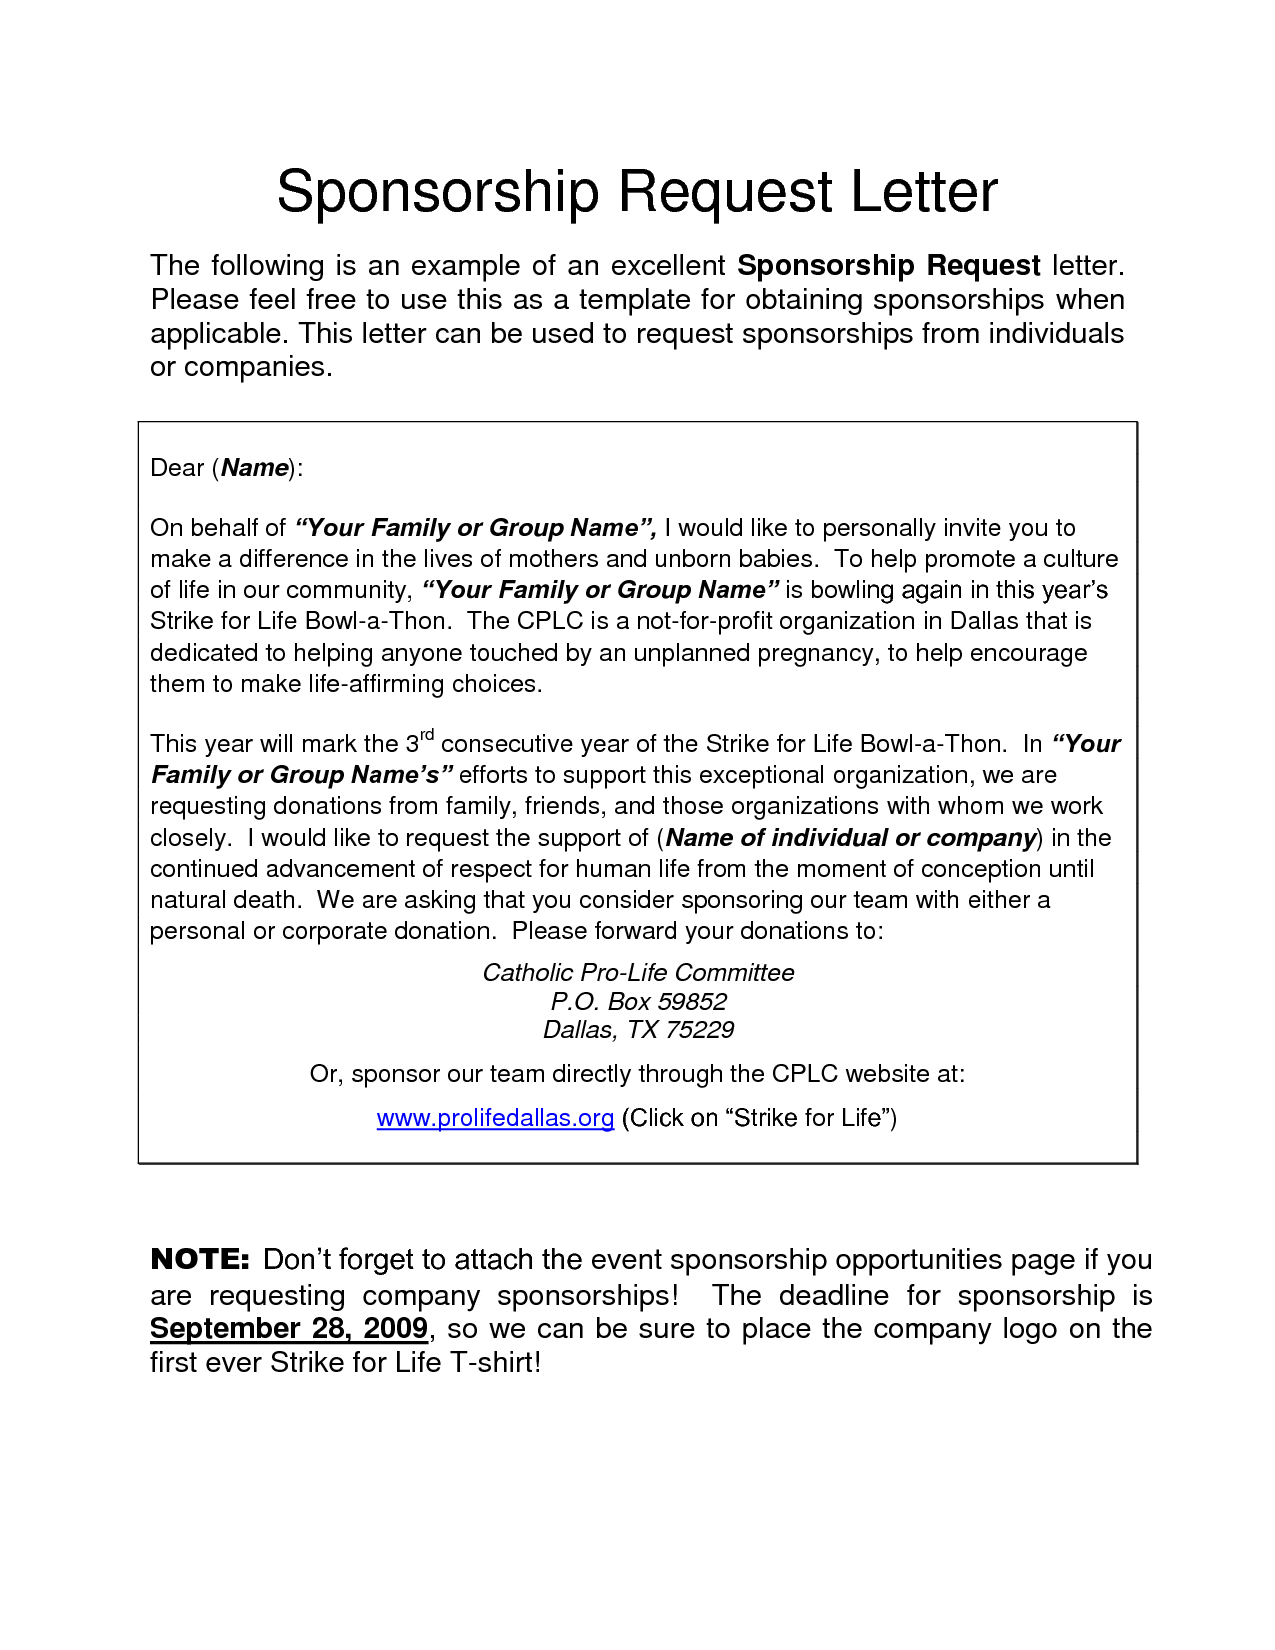 Corporate sponsorship request letter charity donation free sample corporate sponsorship request letter charity donation free sample letters altavistaventures Gallery